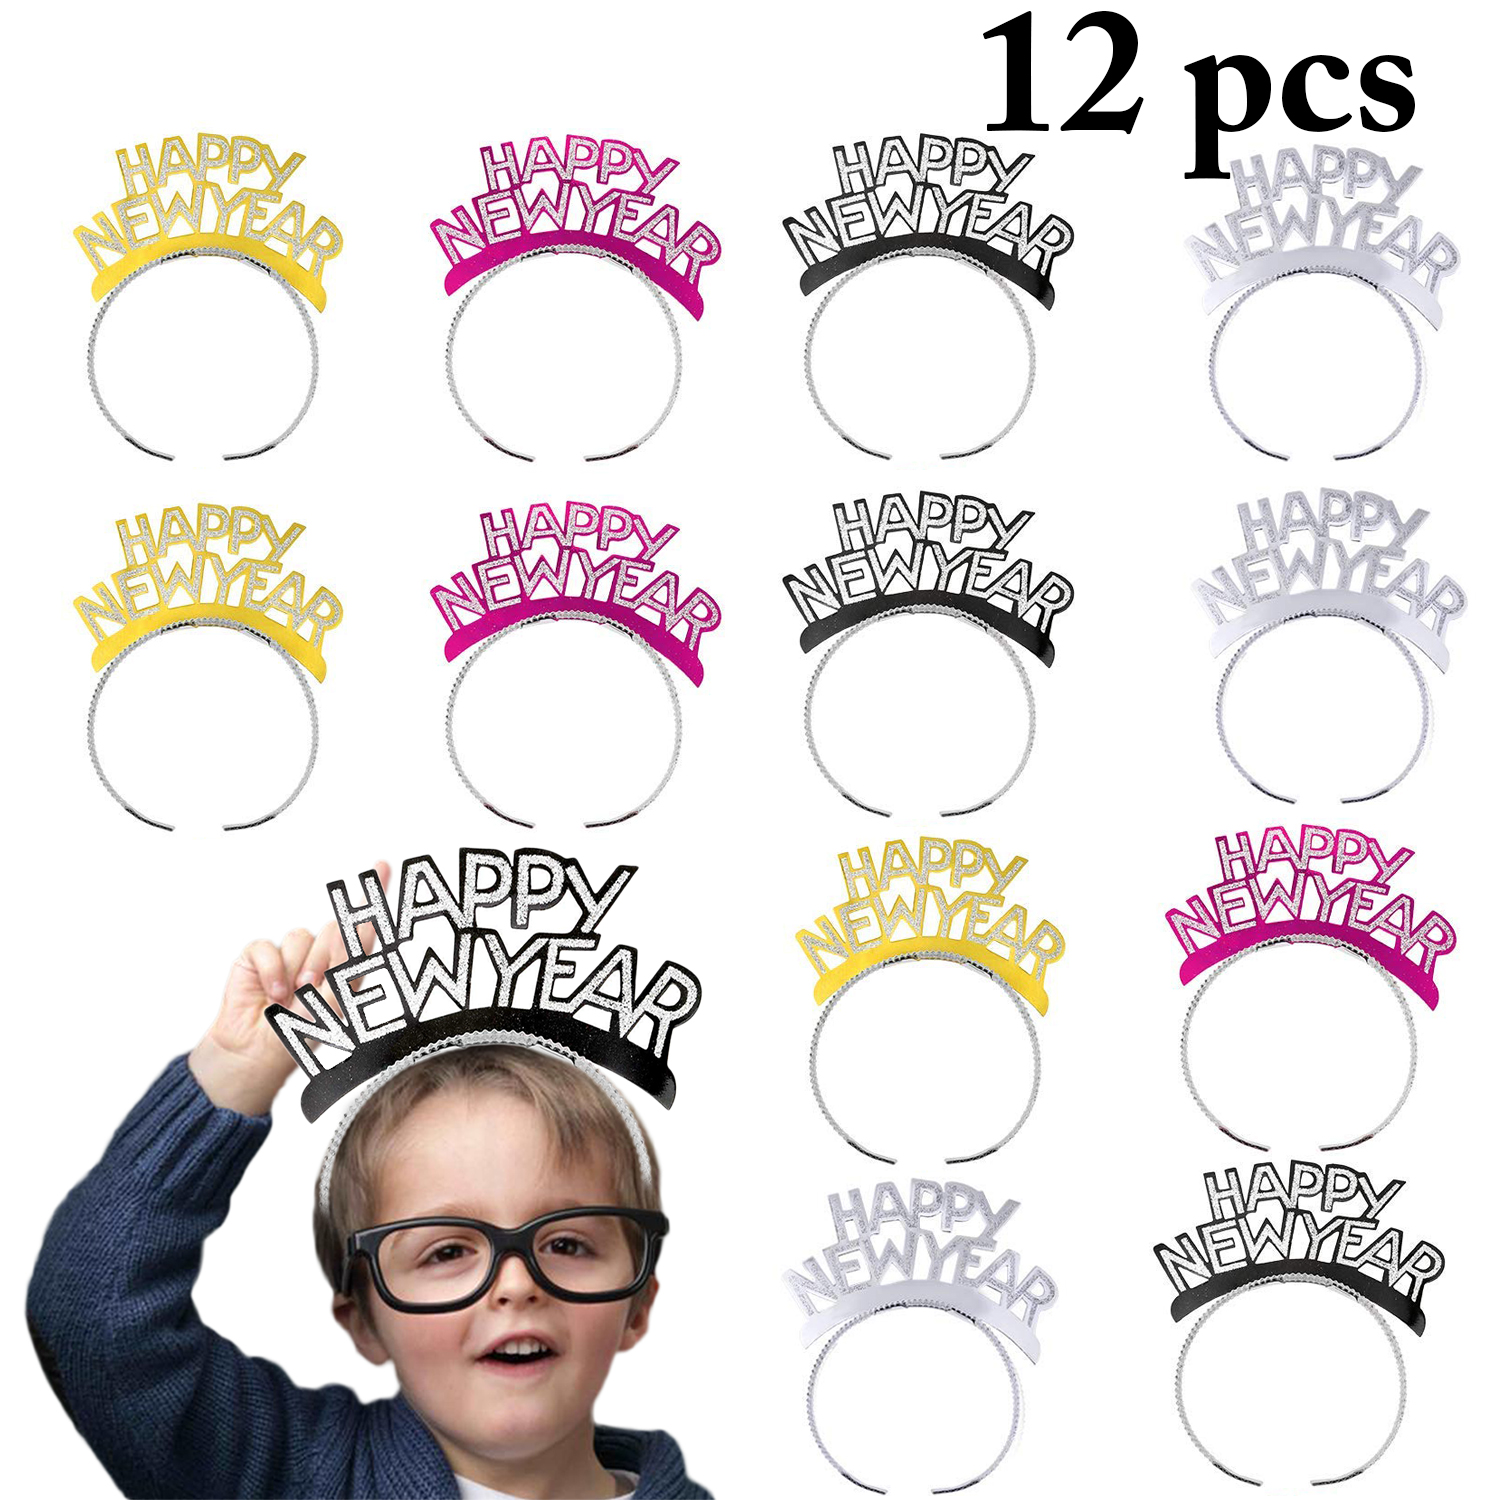 12 PCS Fashion New Year Party Headband Shining Hair Hoop For Festival Decor With 4 Colors Easy To Wear